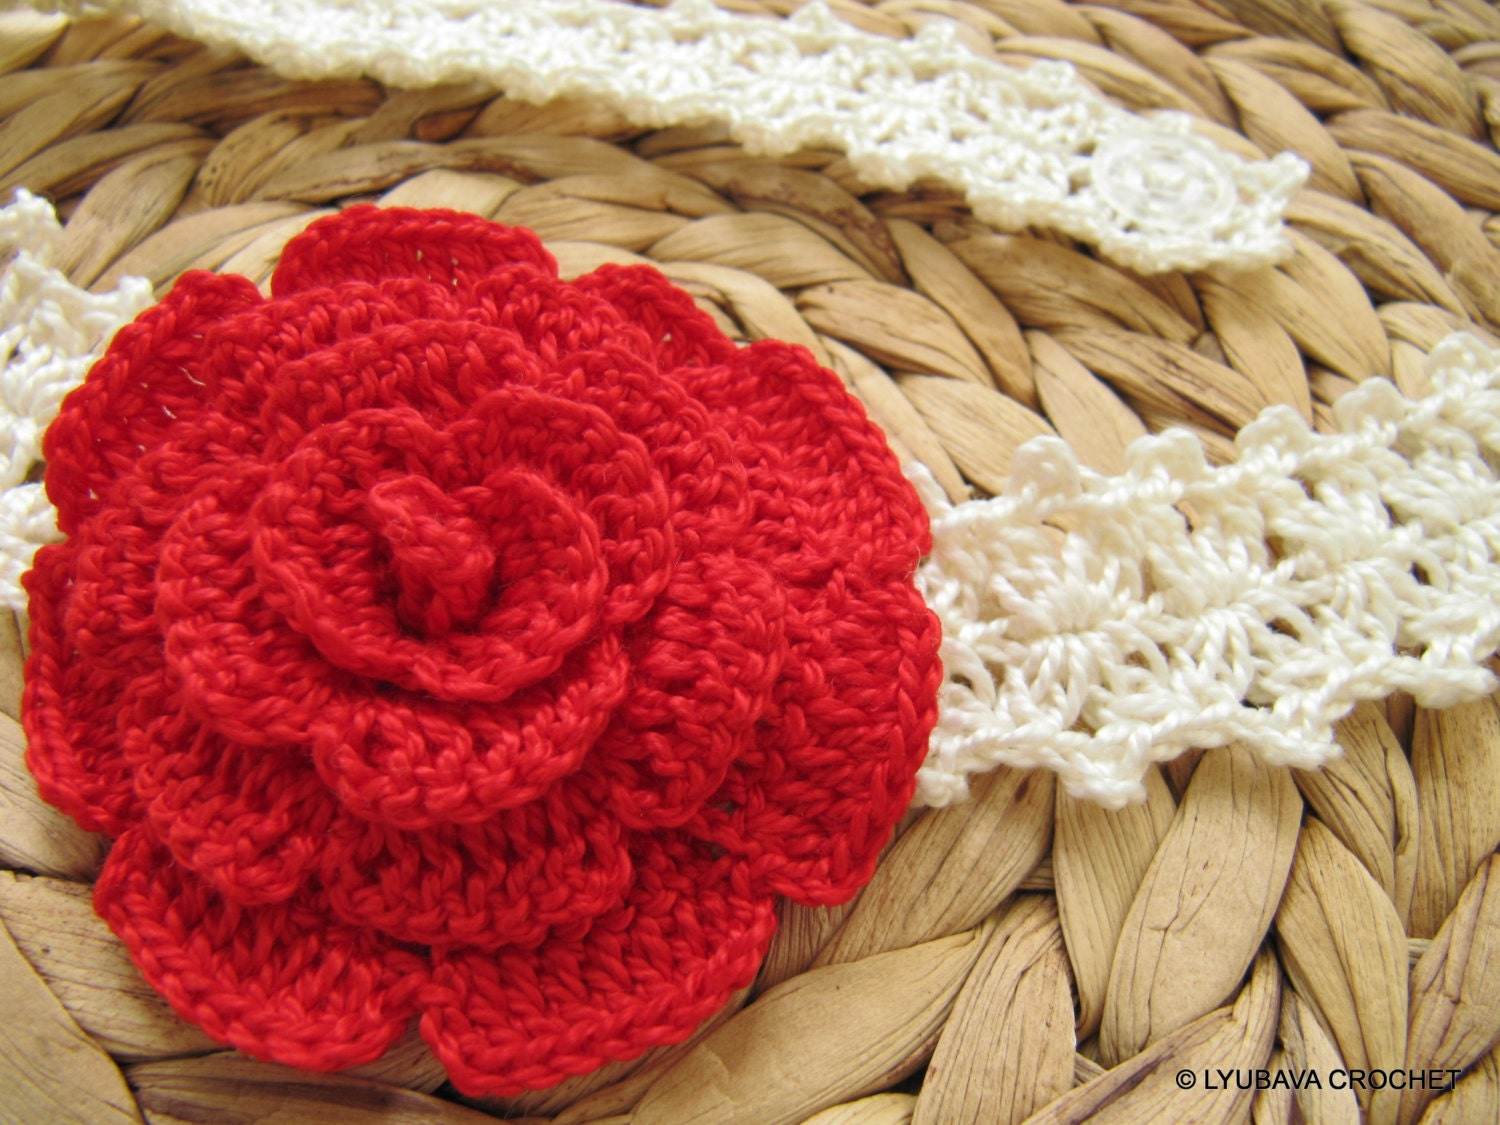 Headband crochet pattern with pretty flower crochet flower pattern headband crochet pattern with pretty flower crochet pattern rose flower headband baby by lyubavacrochet mightylinksfo